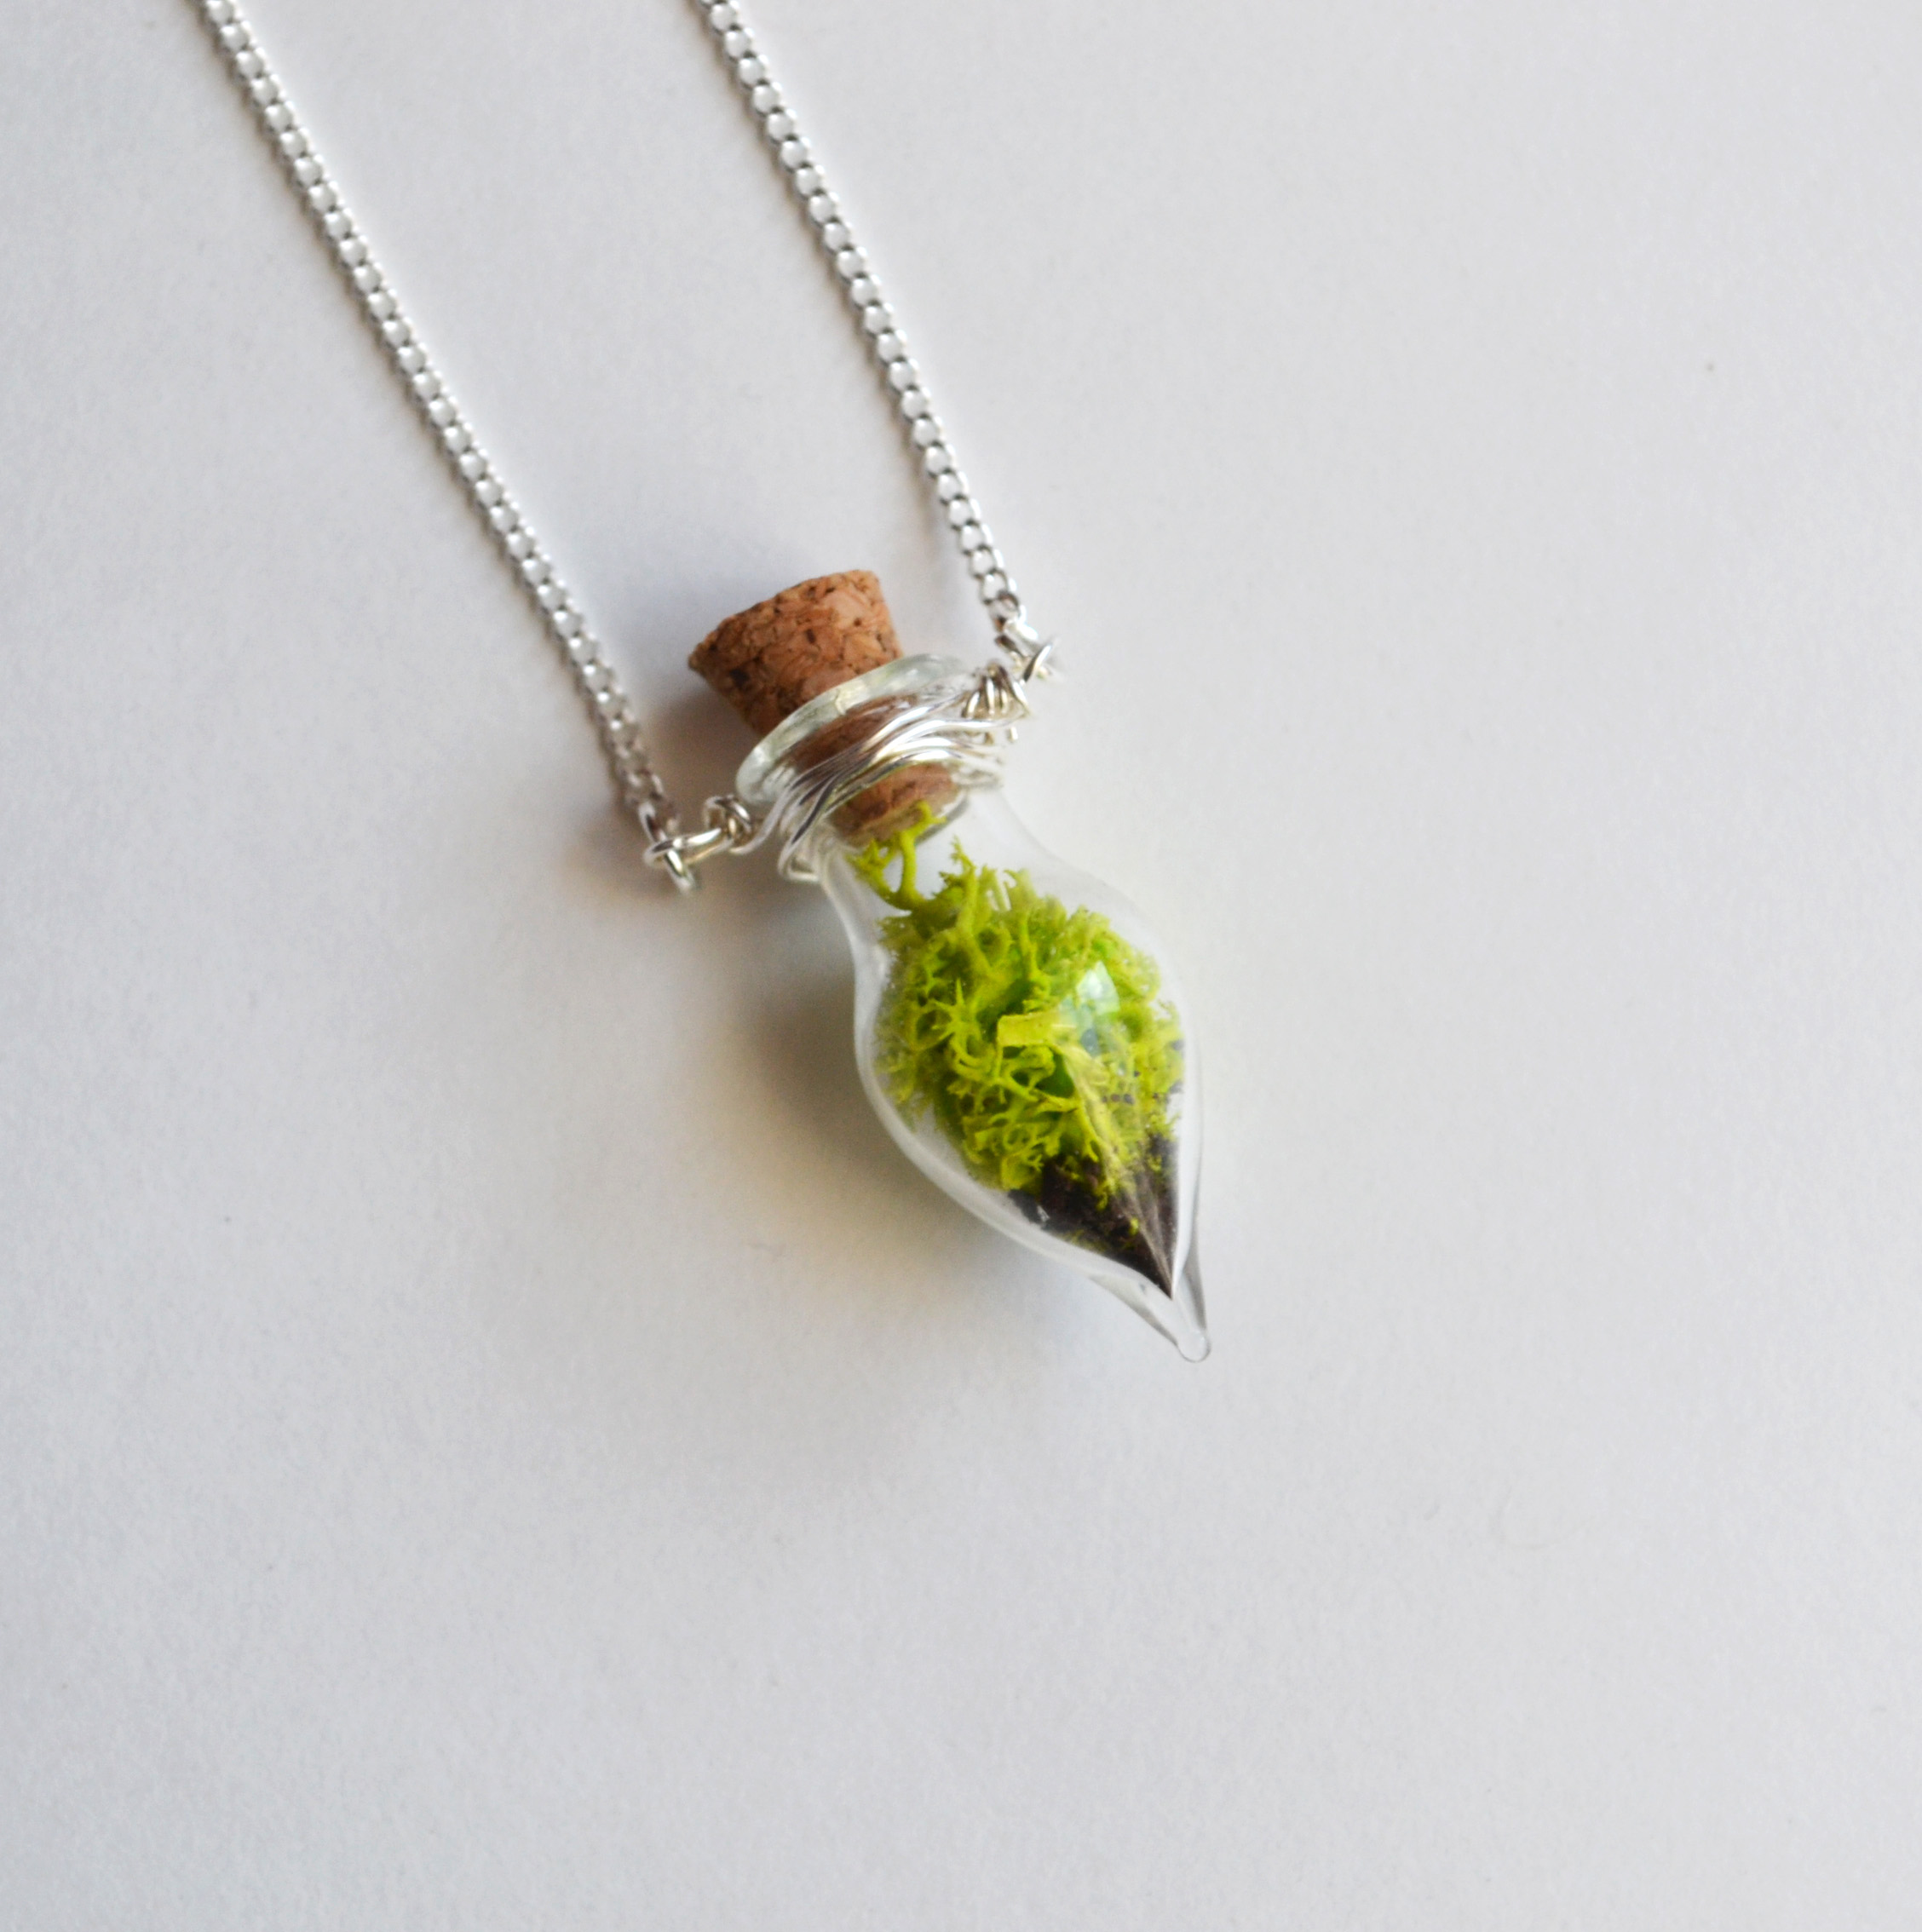 Moss Necklace Spring Jewelry Glass Terrarium Necklace Miniature Terrarium Botanical Jewelry Moss Jewelry Plant Jewelry Live Plant Fauna And Forest Online Store Powered By Storenvy